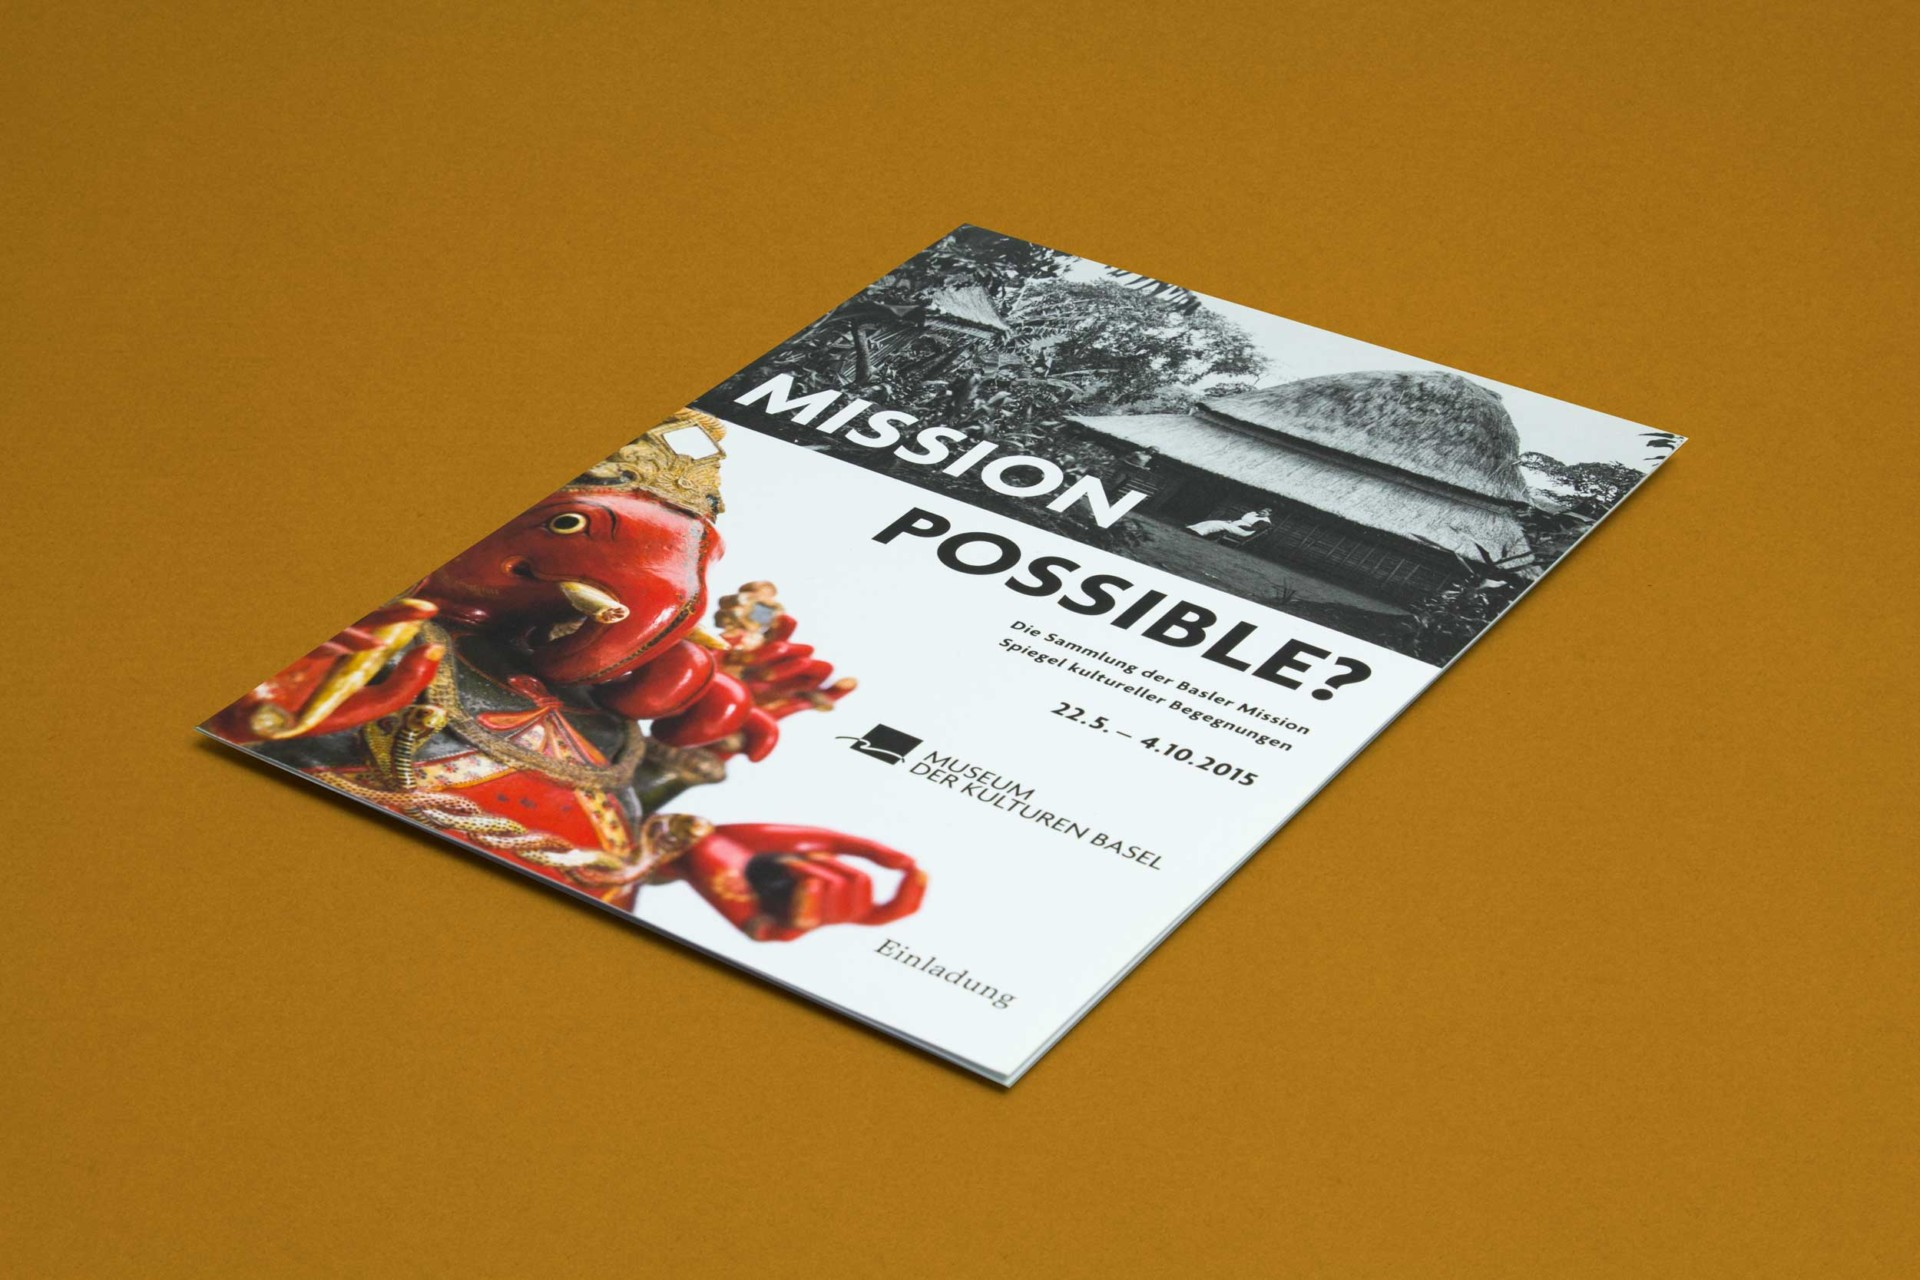 BKVK Museum der Kulturen Basel, Mission Possible? — Ausstellungspublikation